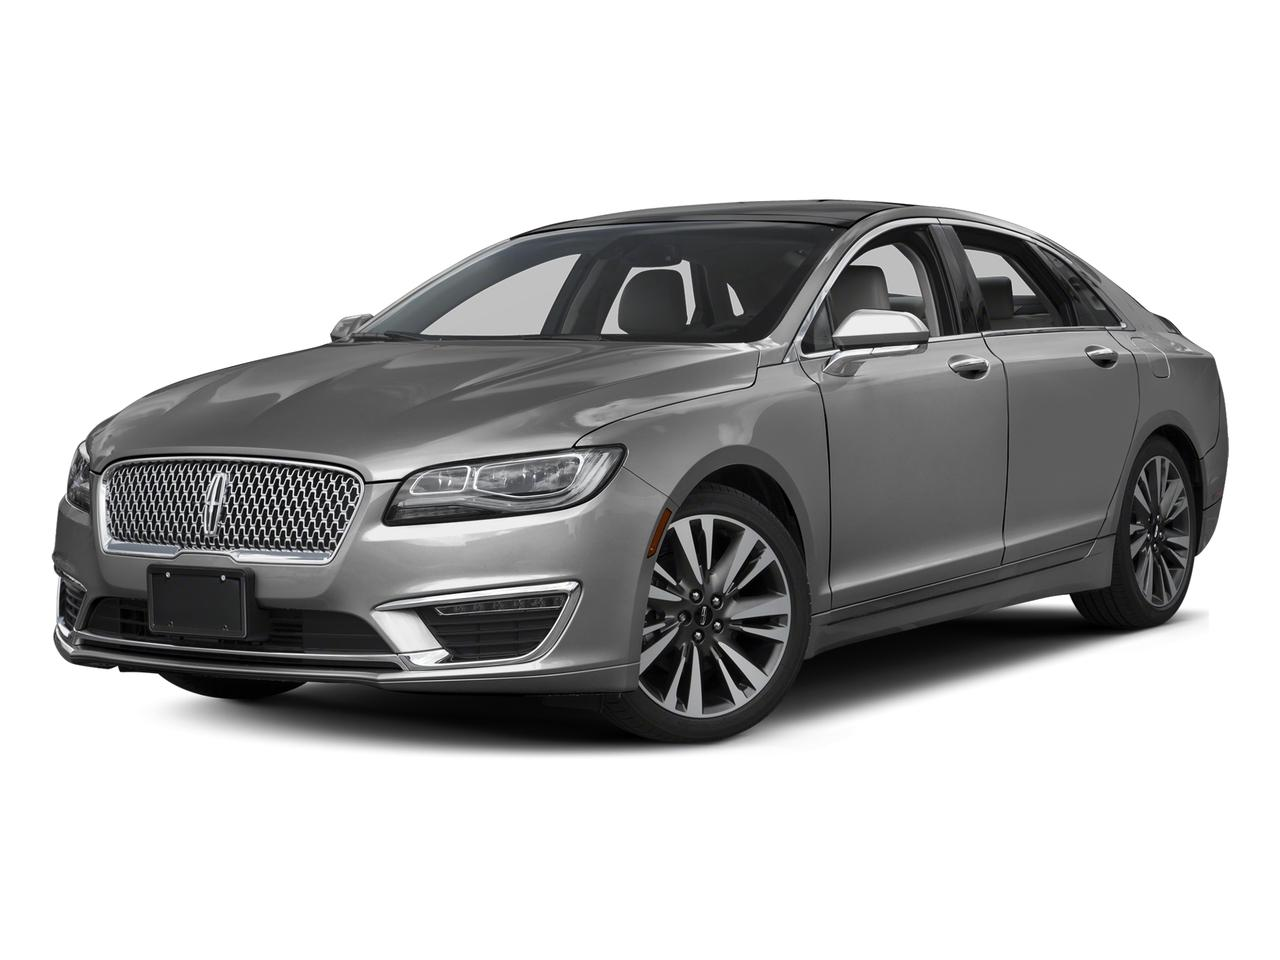 2017 LINCOLN MKZ Vehicle Photo in Medina, OH 44256